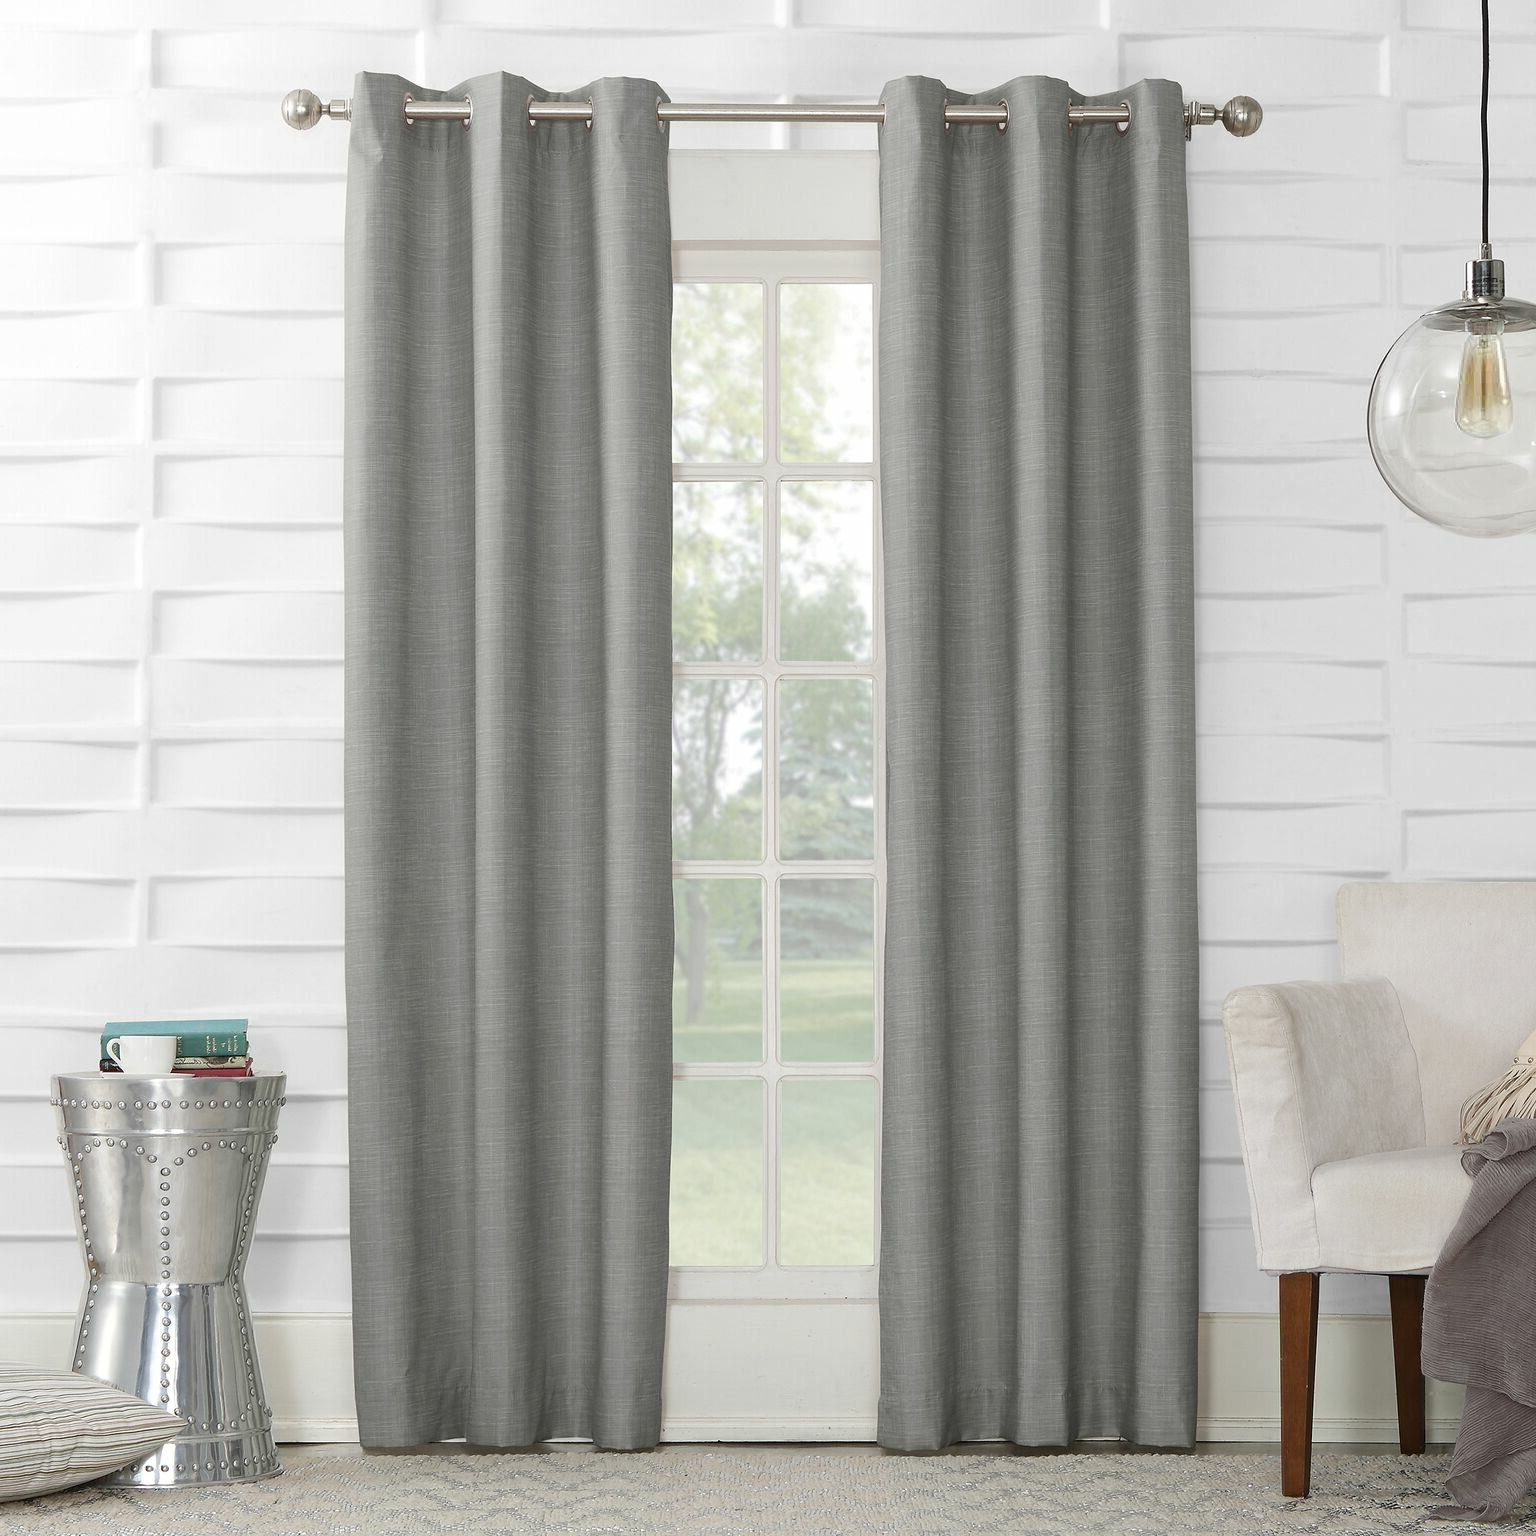 Popular Winslow Solid Room Darkening Thermal Grommet Single Curtain Panel With Regard To Thermal Textured Linen Grommet Top Curtain Panel Pairs (View 13 of 20)